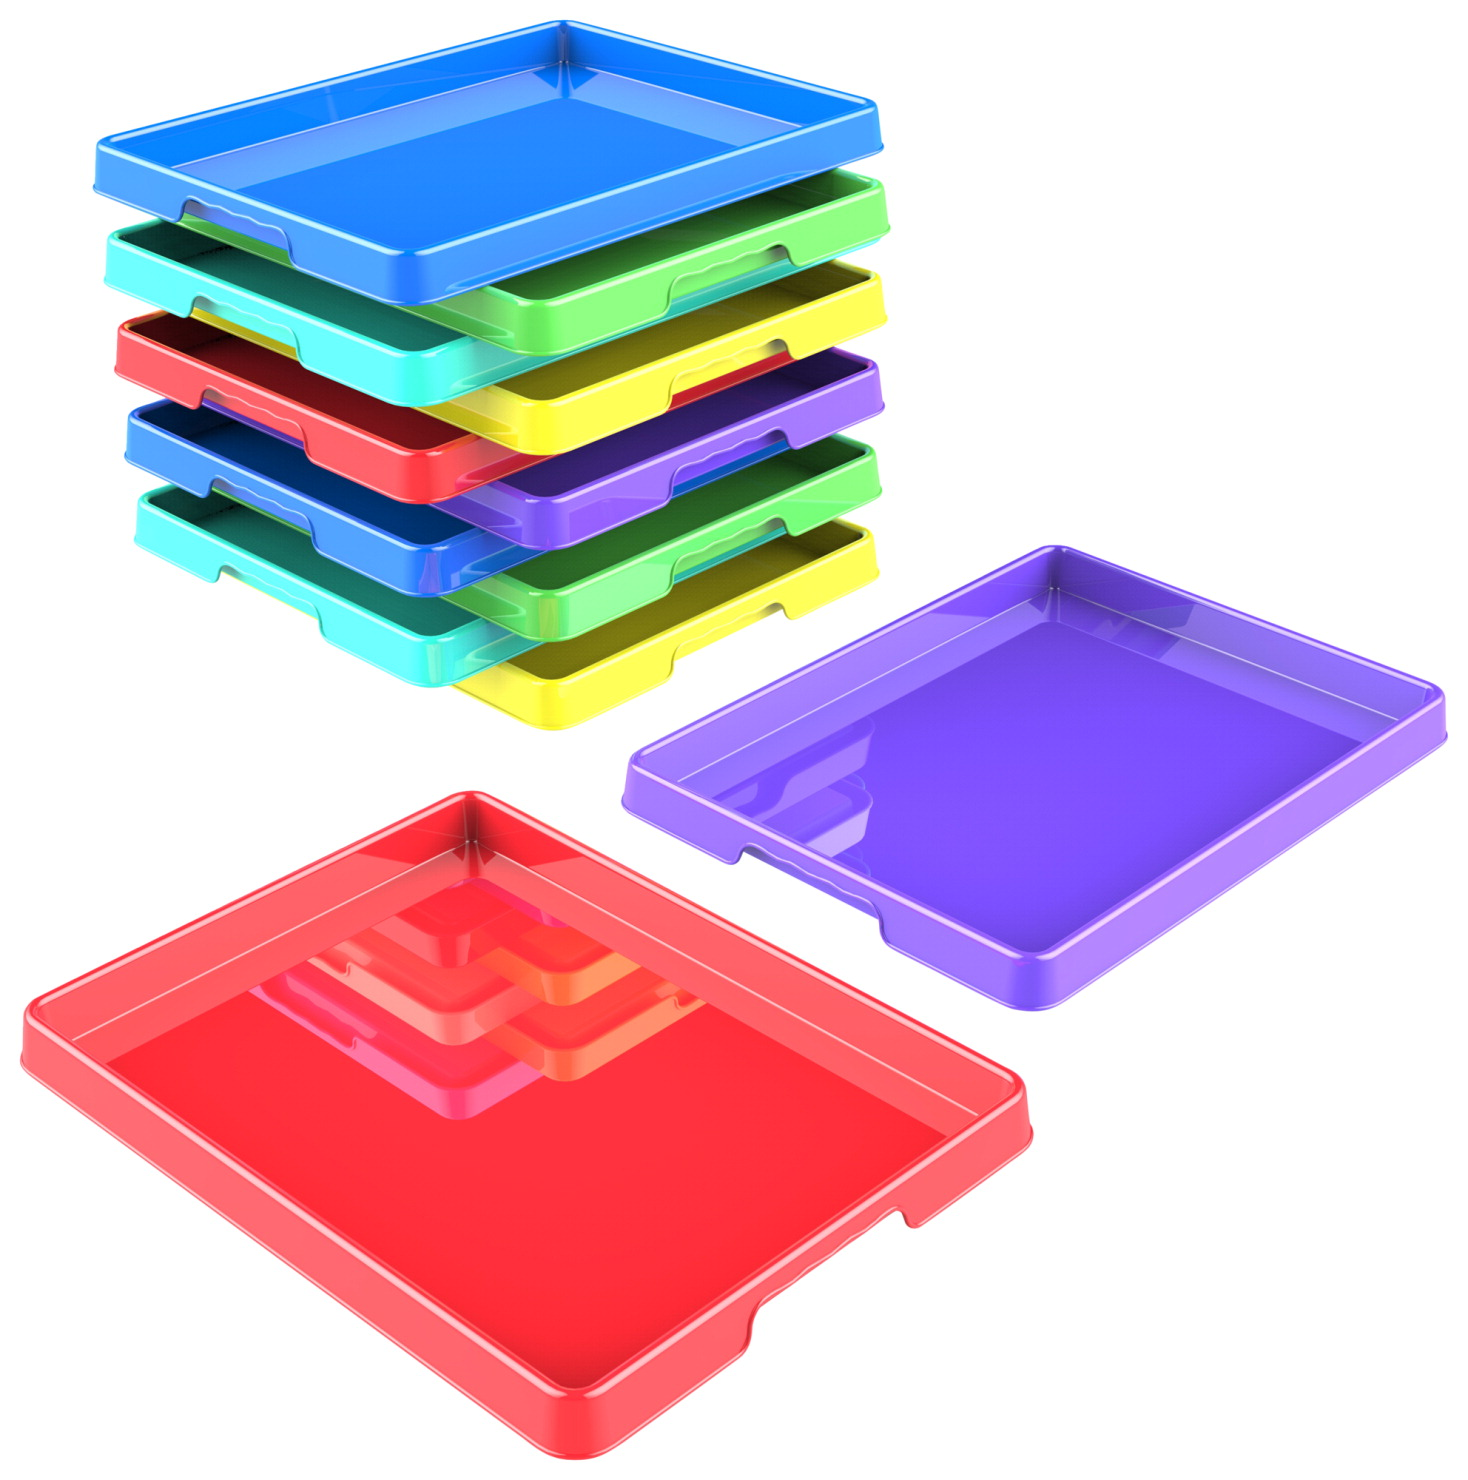 Storex Sorting and Crafts Tray, 12 x 16 Inches, Assorted Colors, Set of 12